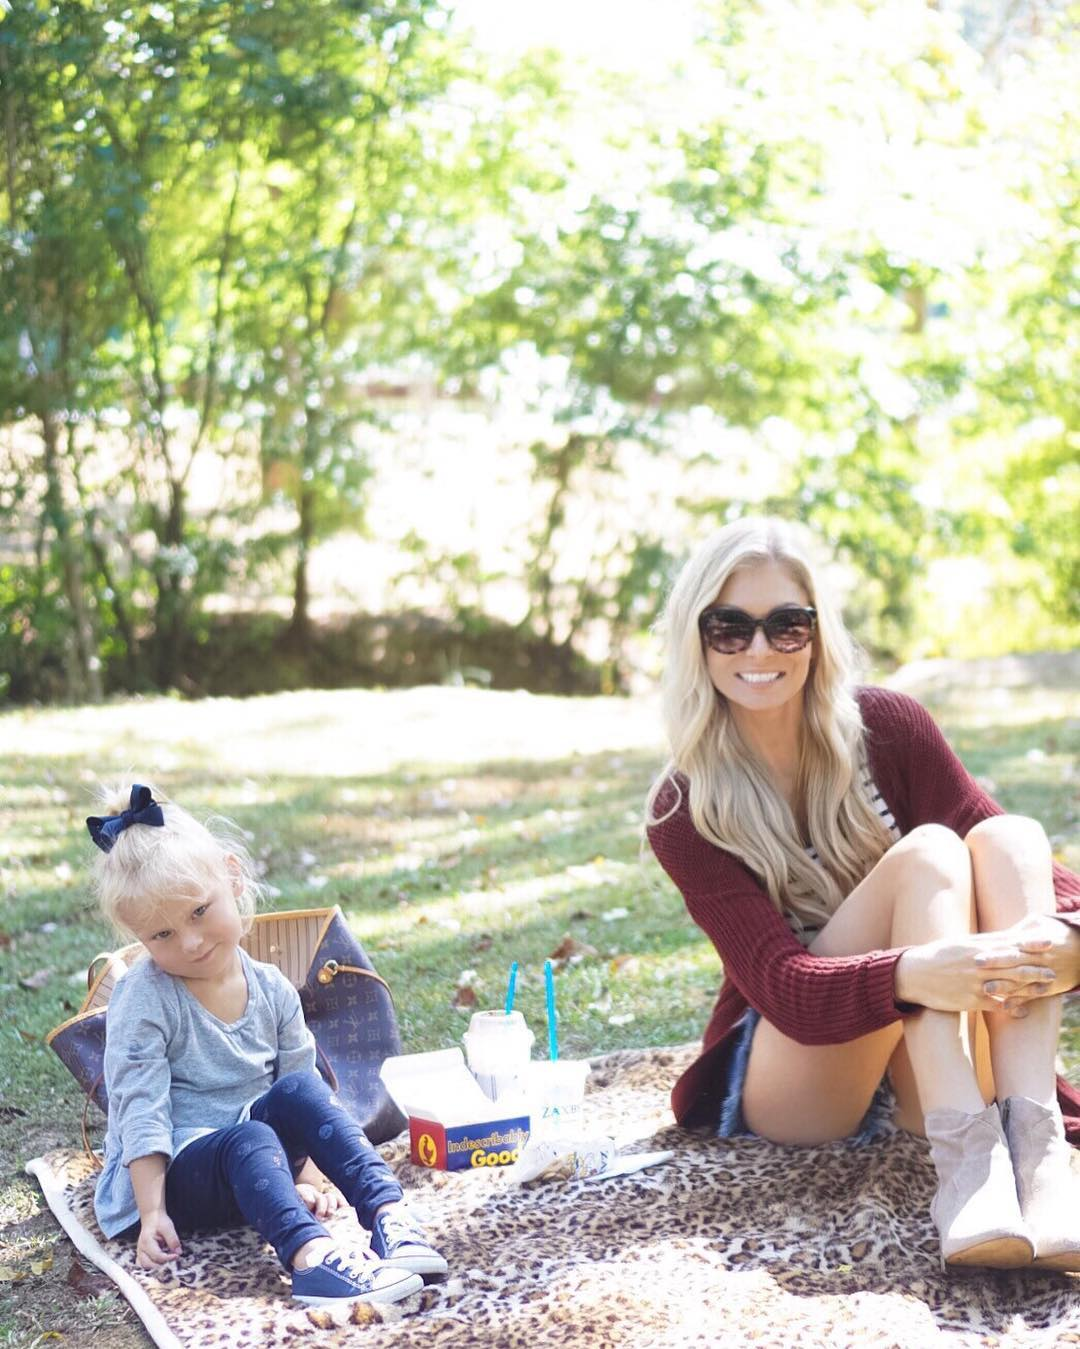 When it feels like summer in the middle of October...forget the to-do list and picnic at the park! ☀️ { Spoiler alert - bees really love birthday cake milkshakes } #lifewithblove #momlife